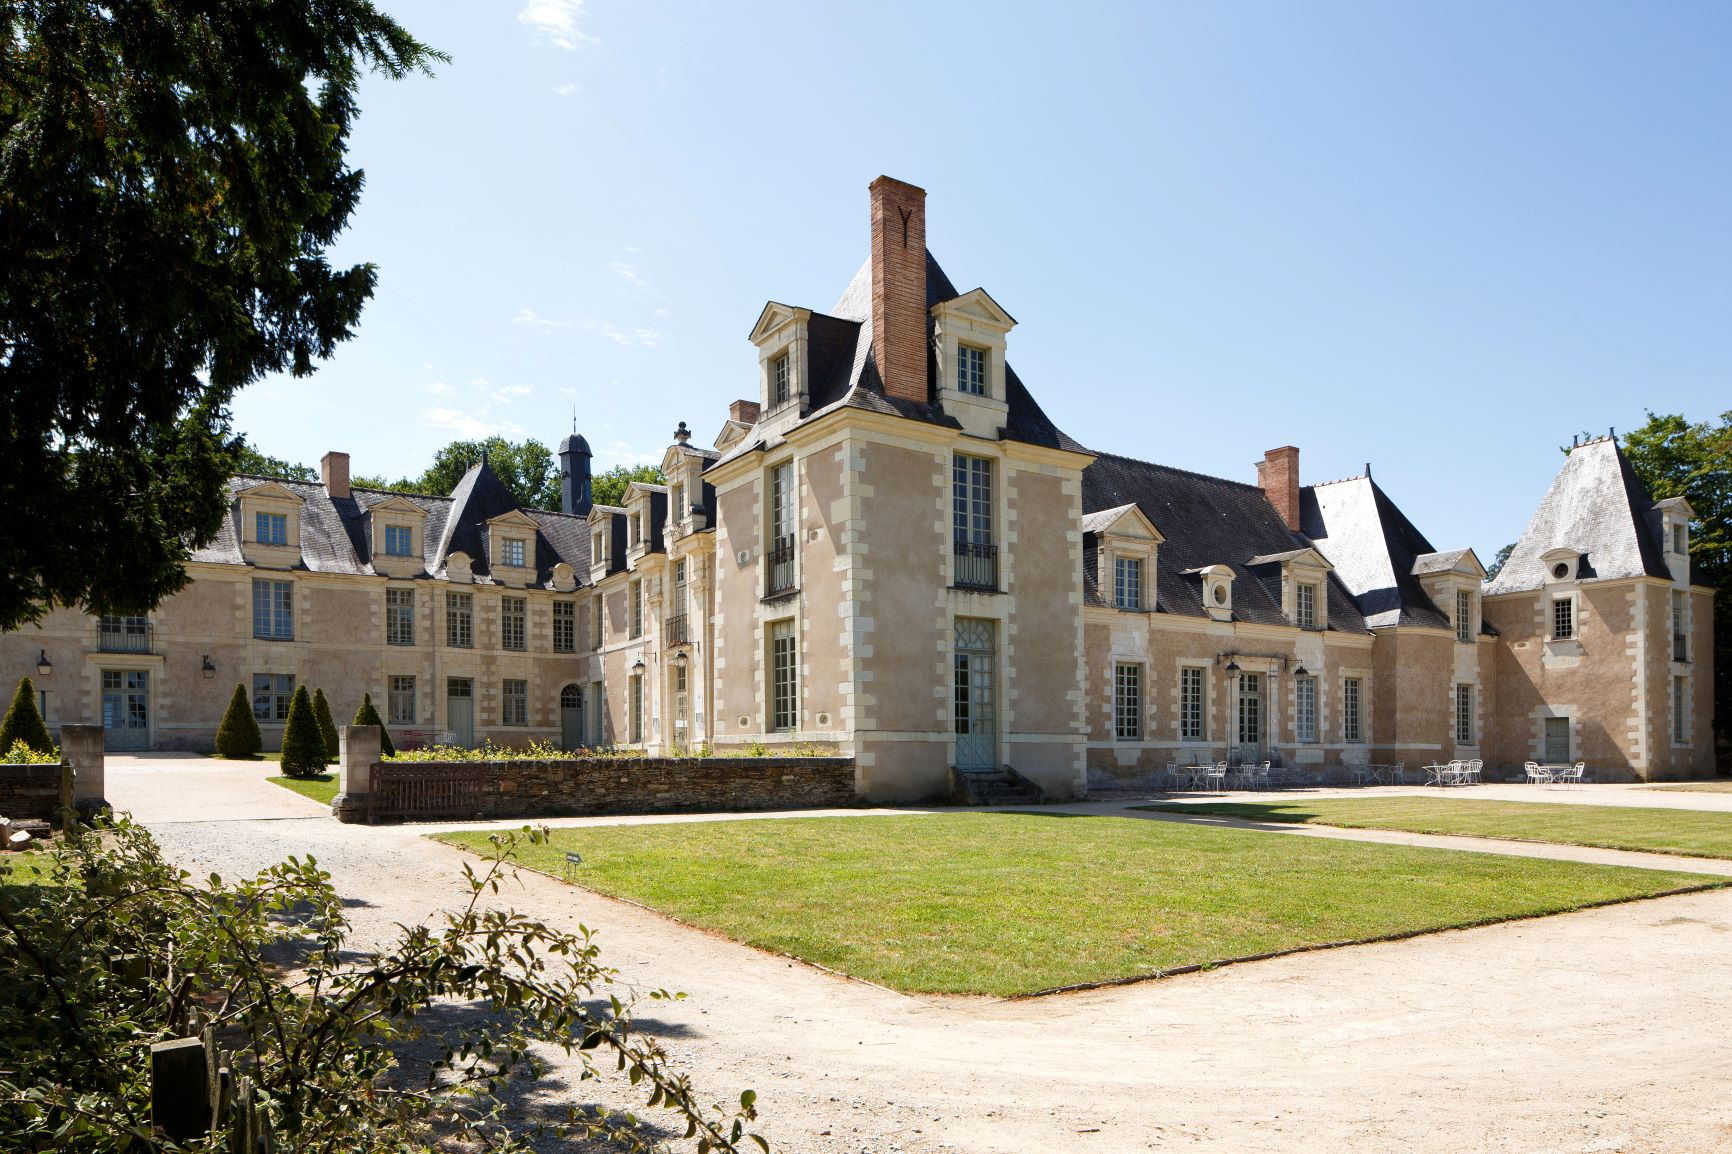 280/Chateau_Perriere/Exterieur/Full_Exterior_3_resize.JPG